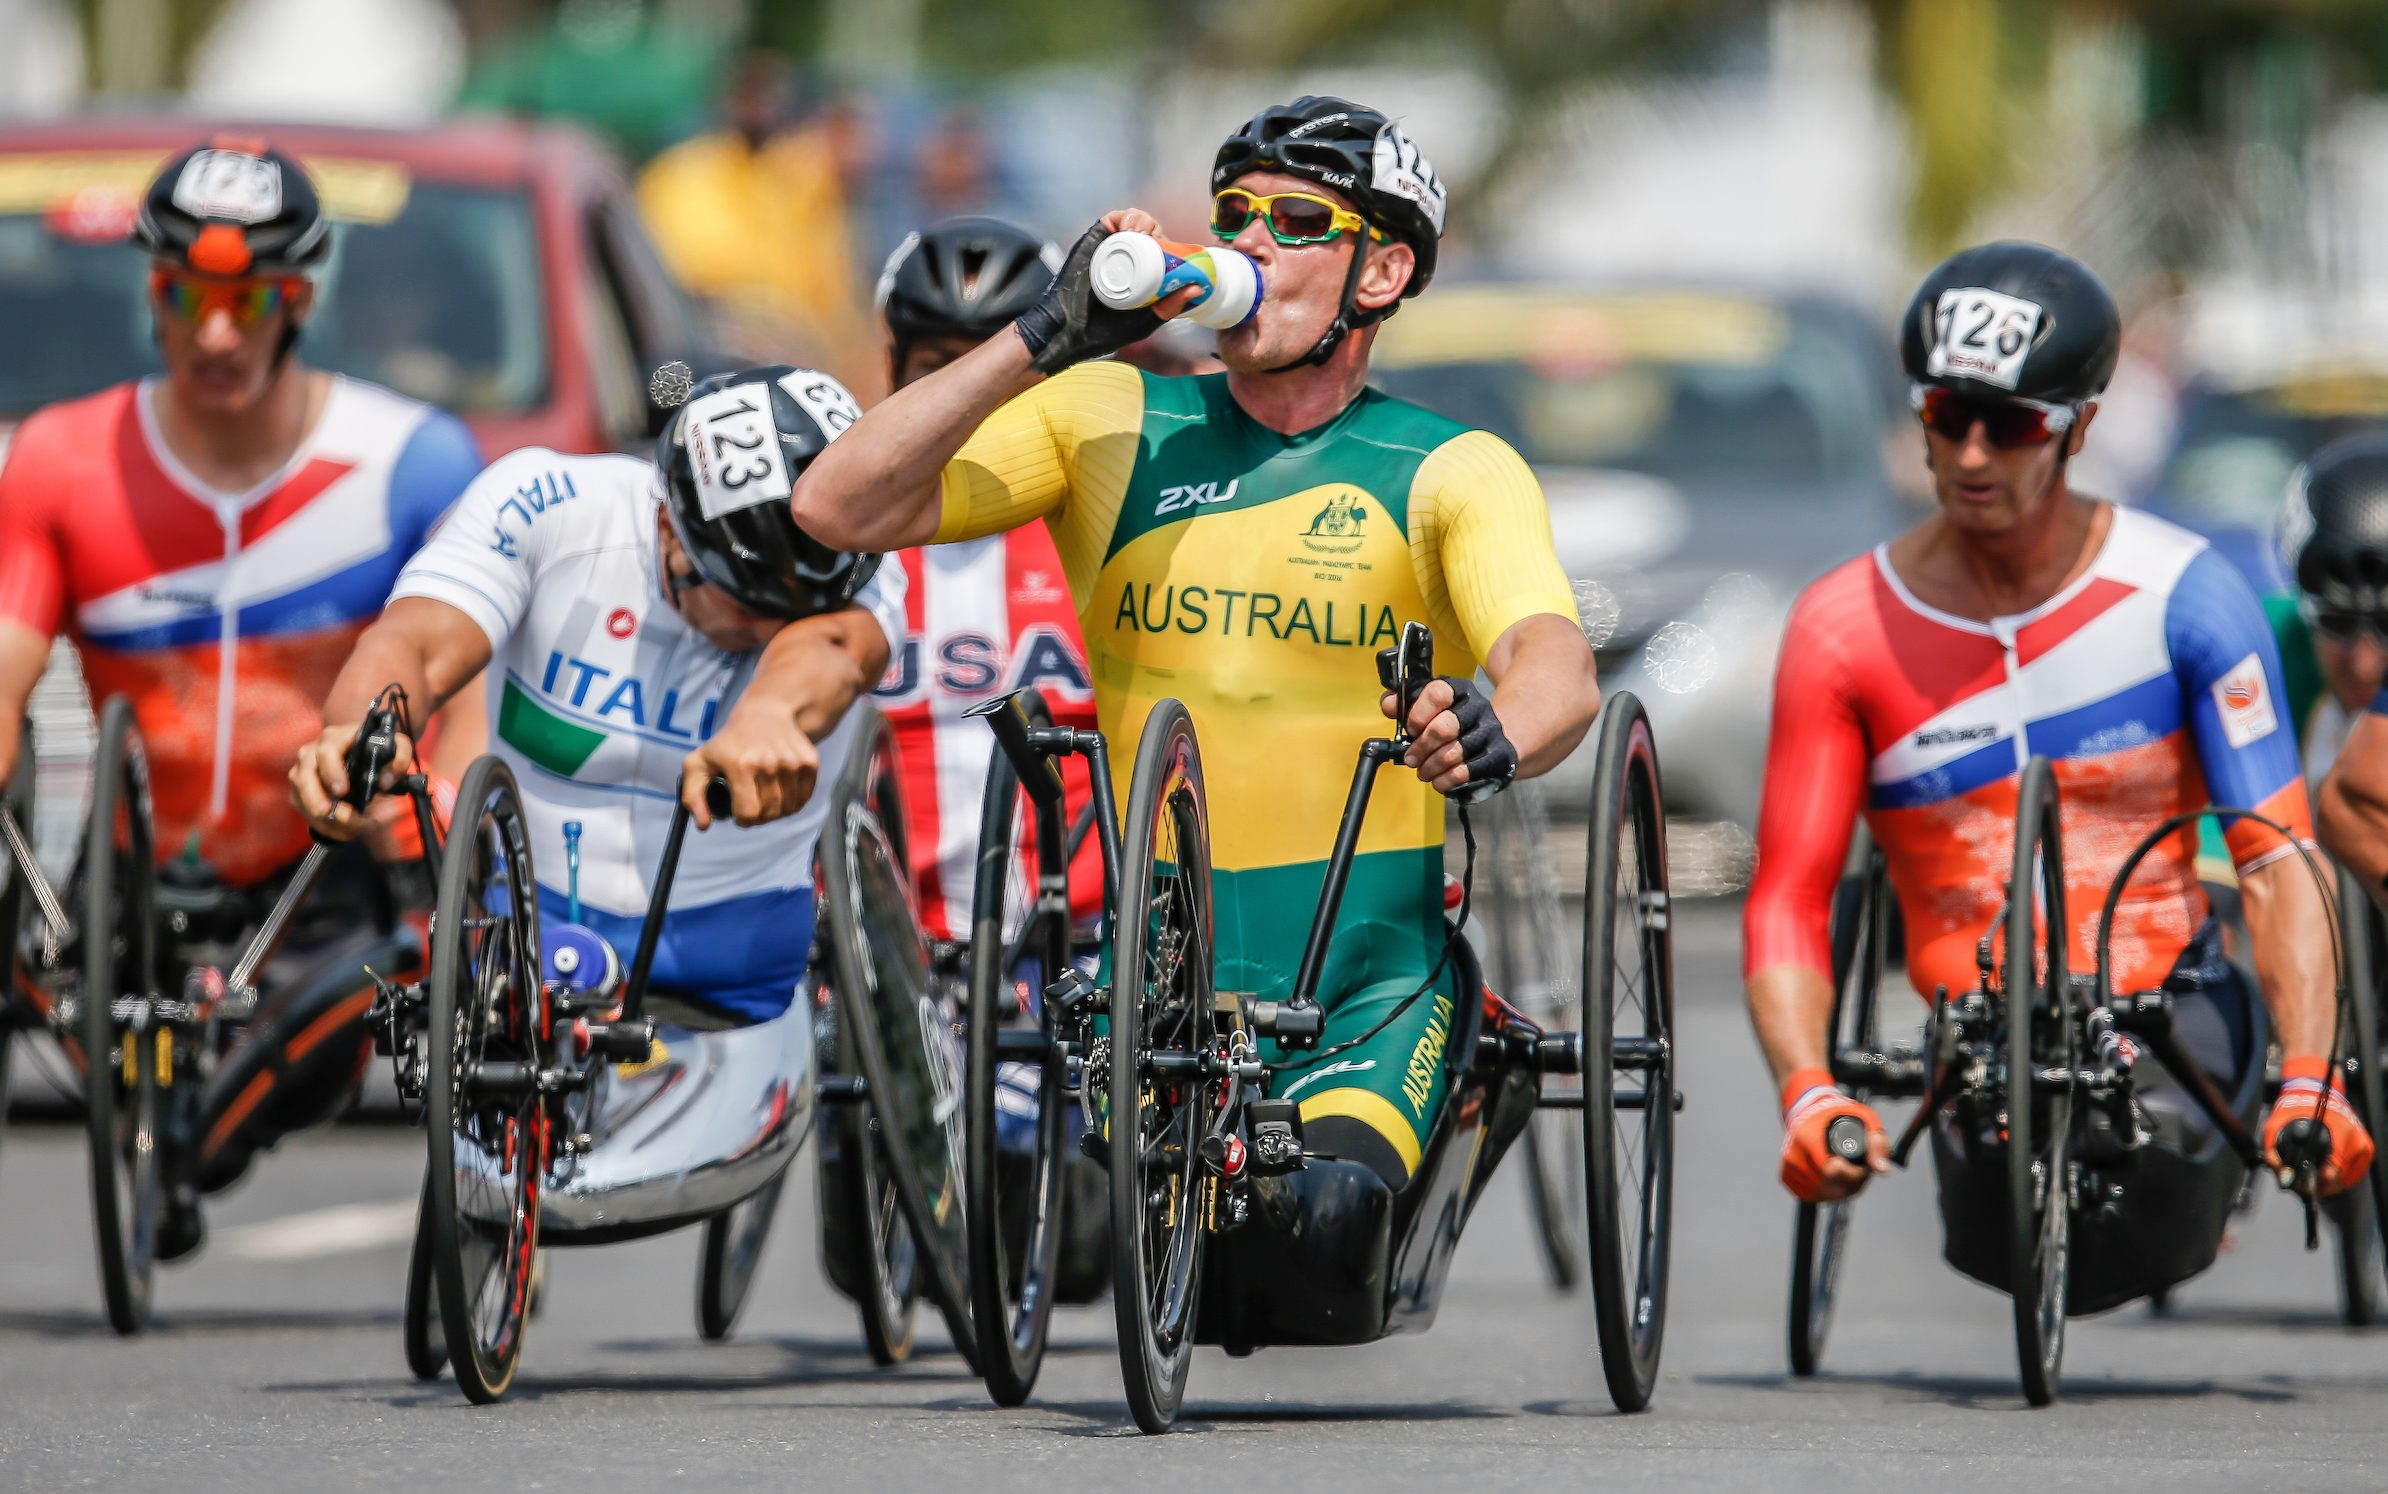 Team announced for 2018 UCI Para Road World Championships